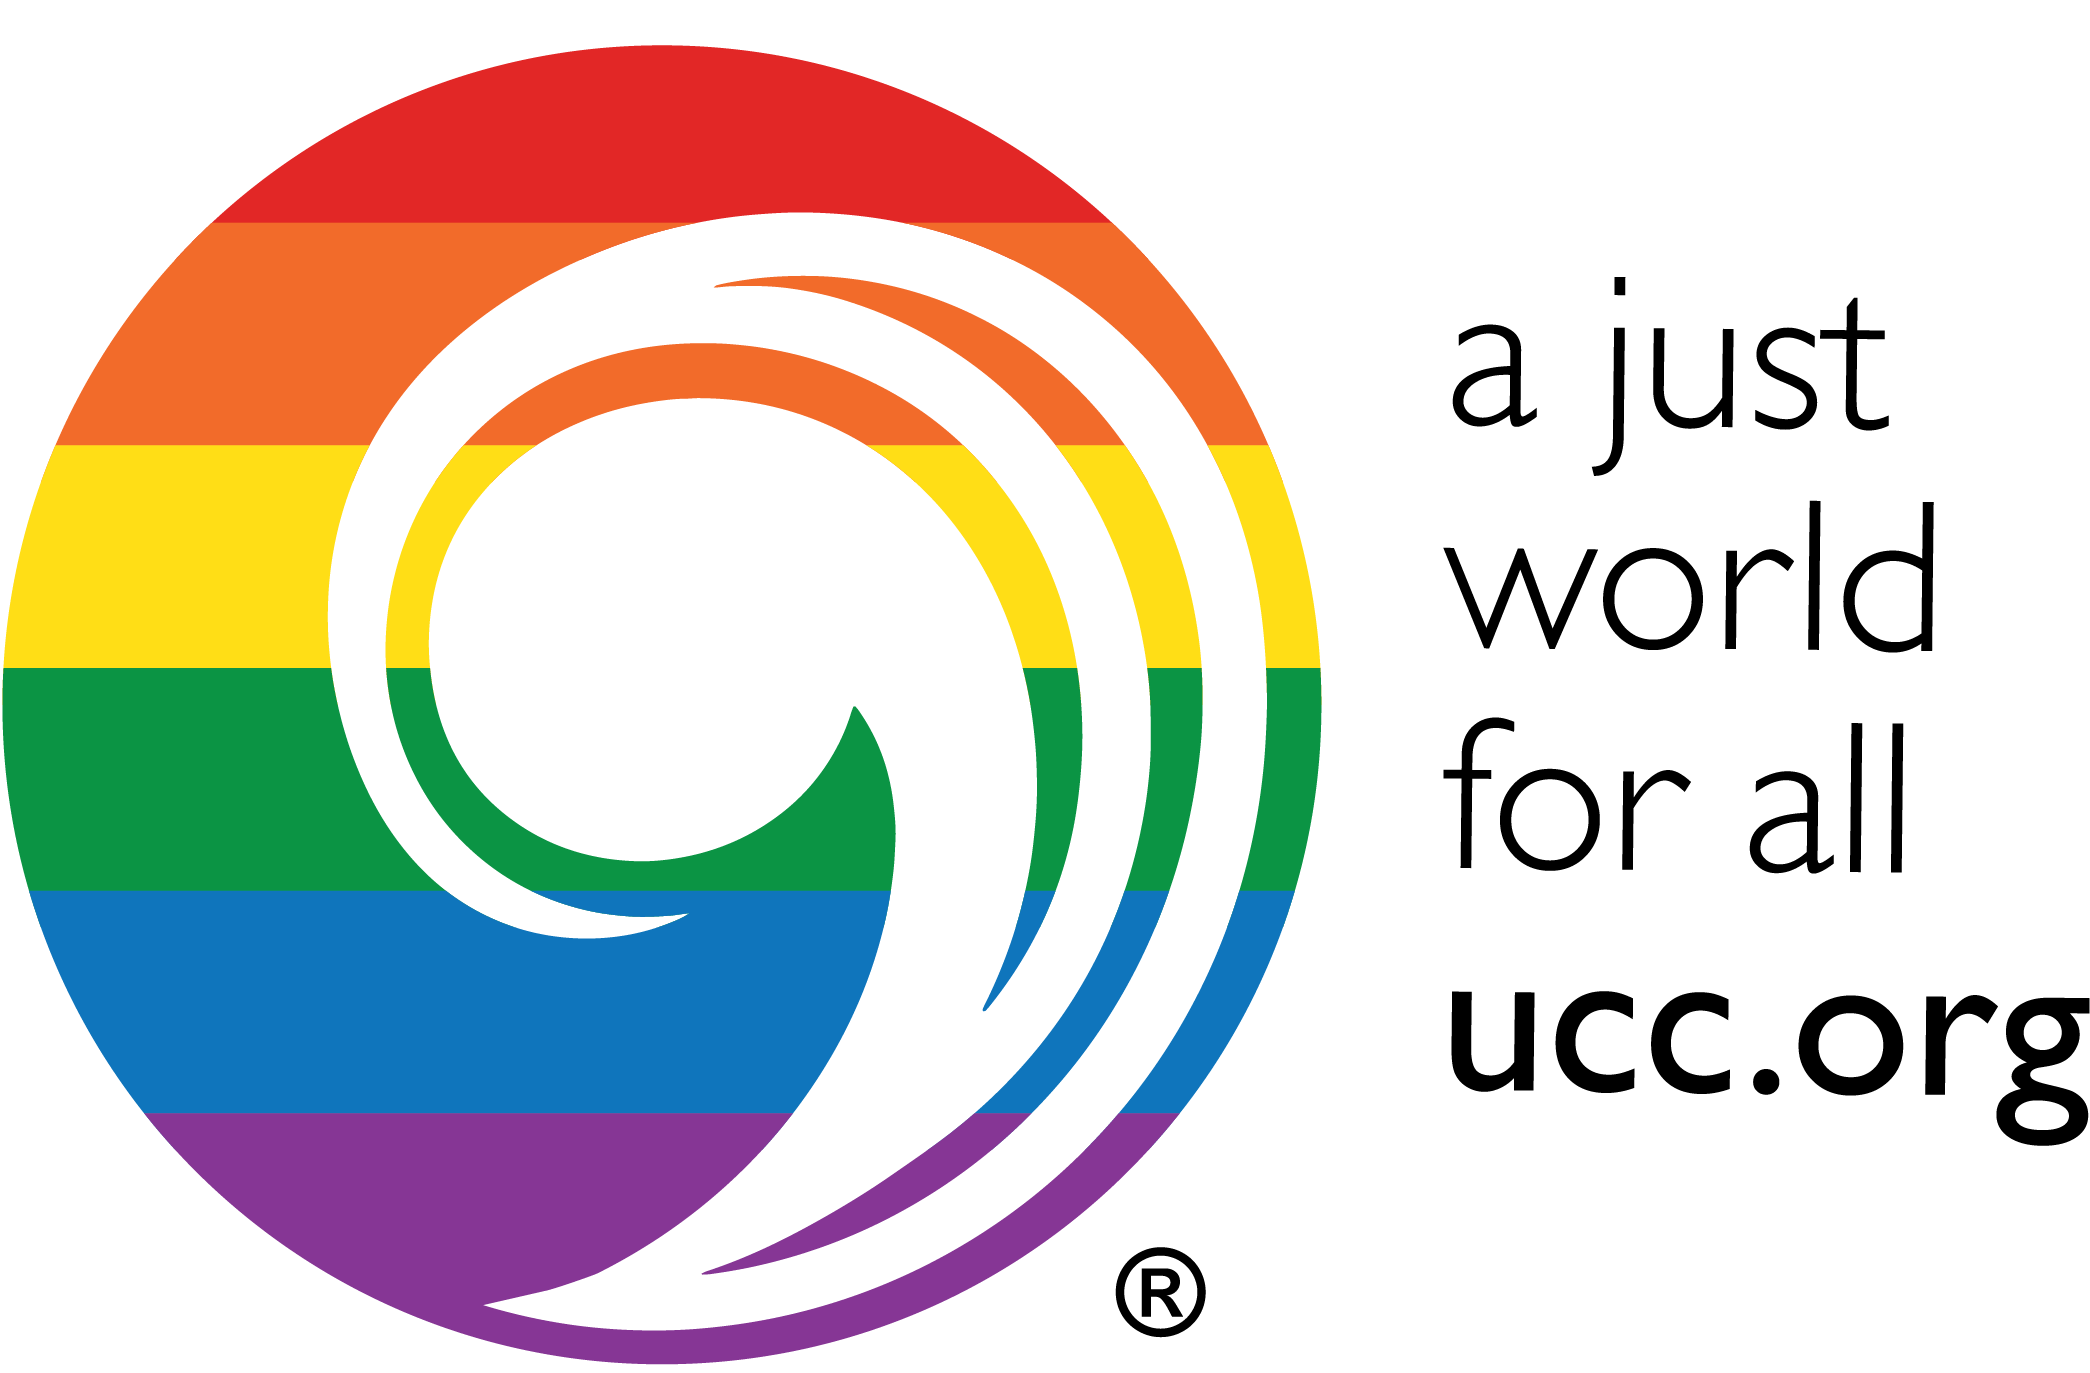 UCC-Comma-Rainbow.png